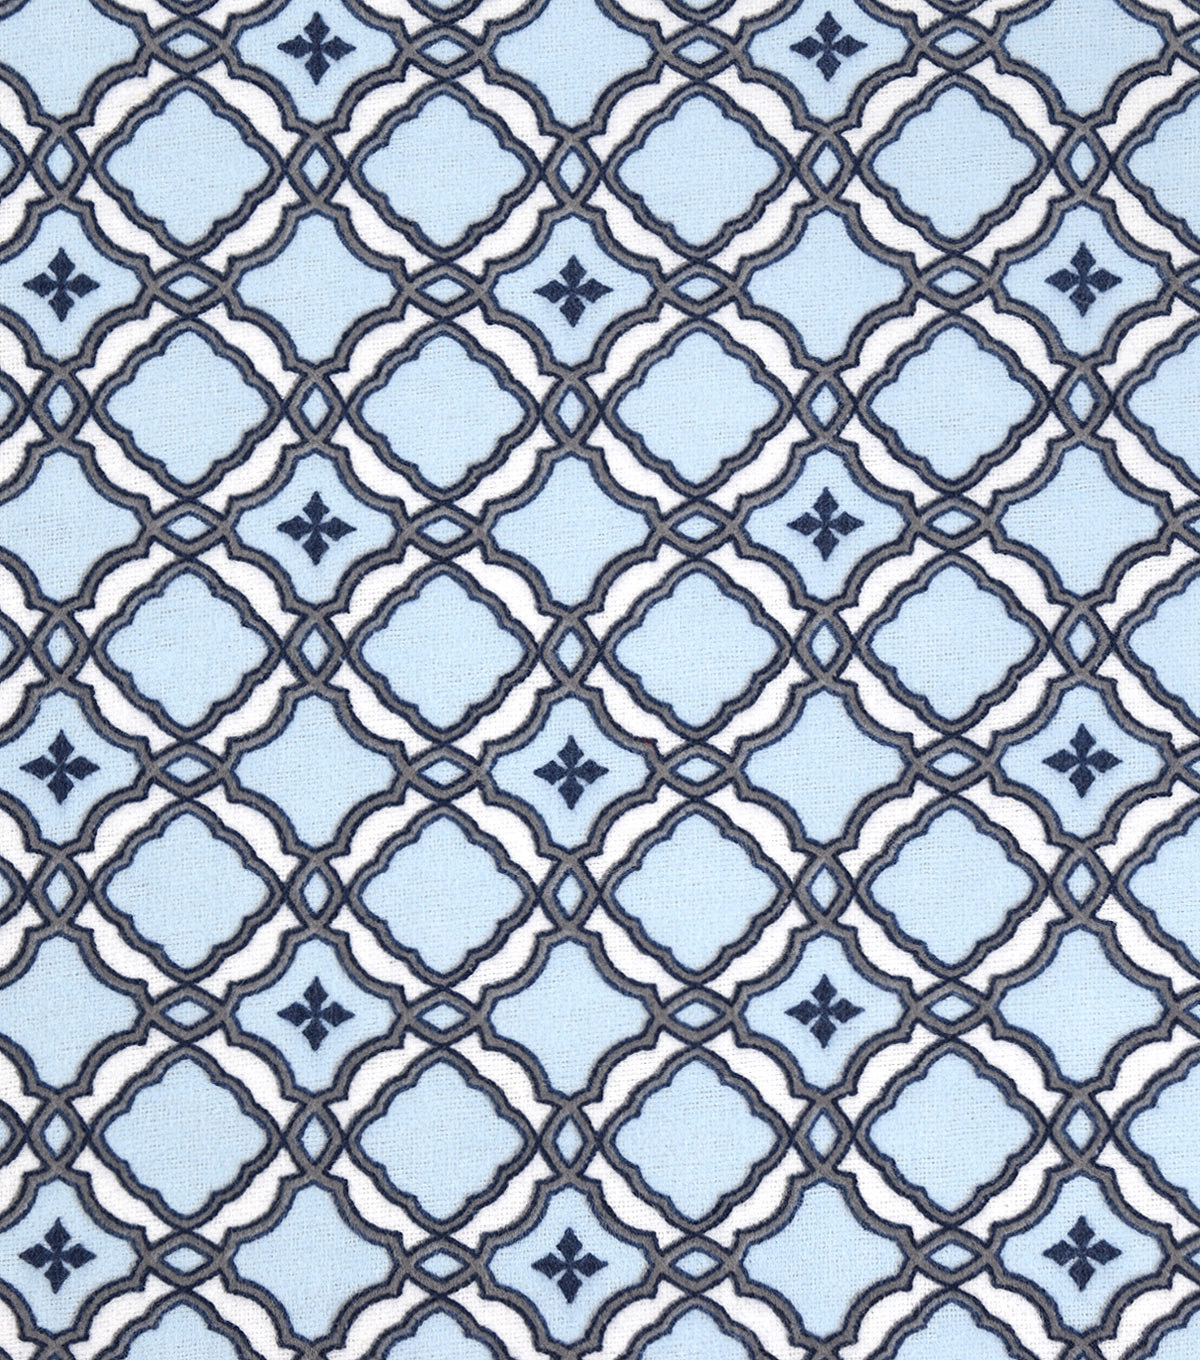 Snuggle Flannel Fabric 42''-Spa Link Medallion